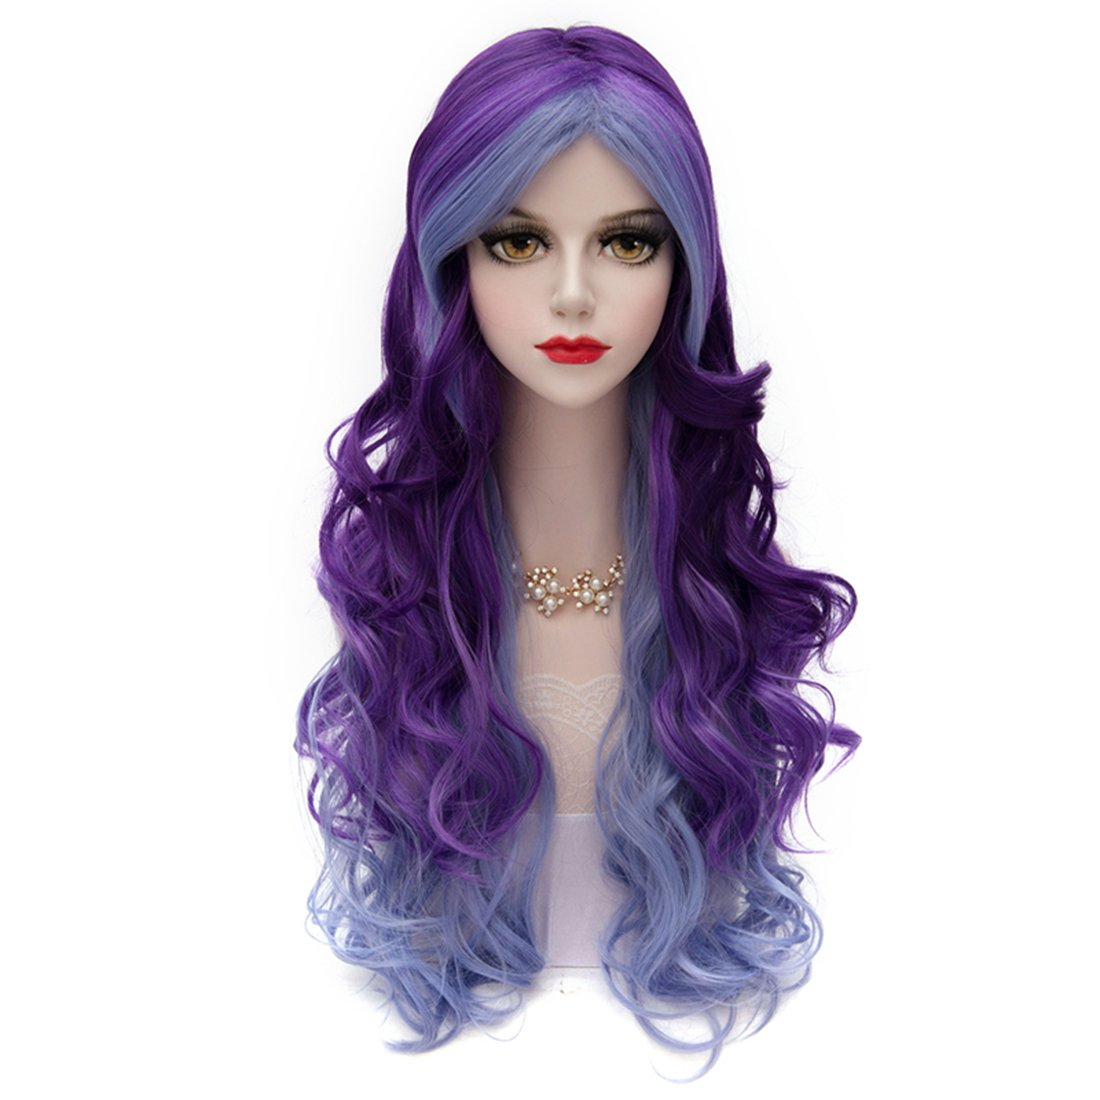 Women Violet Purple Wig, MQ Long Curly Wavy Wig for Girls 29.5 Inch Colorful Wigs Cosplay Costume Party Fluffy Wig Synthetic Charming Heat Friendly Ombre Wigs (Blue to Purple)